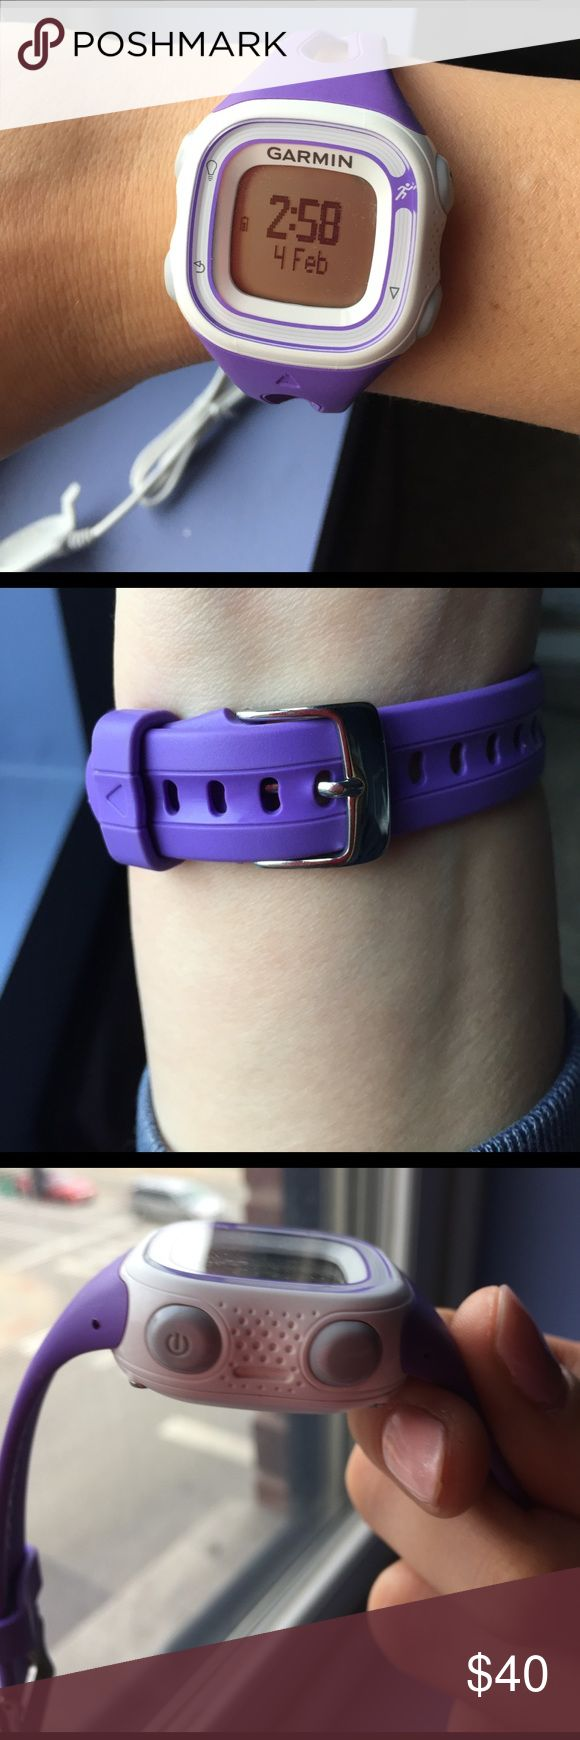 Garmin Forerunner 10 Like new!! 🏃🏼♀️Easy way to accurate track your running miles outside. Good for beginning running. I only wore this for a few runs and I loved it! garmin Accessories Watches